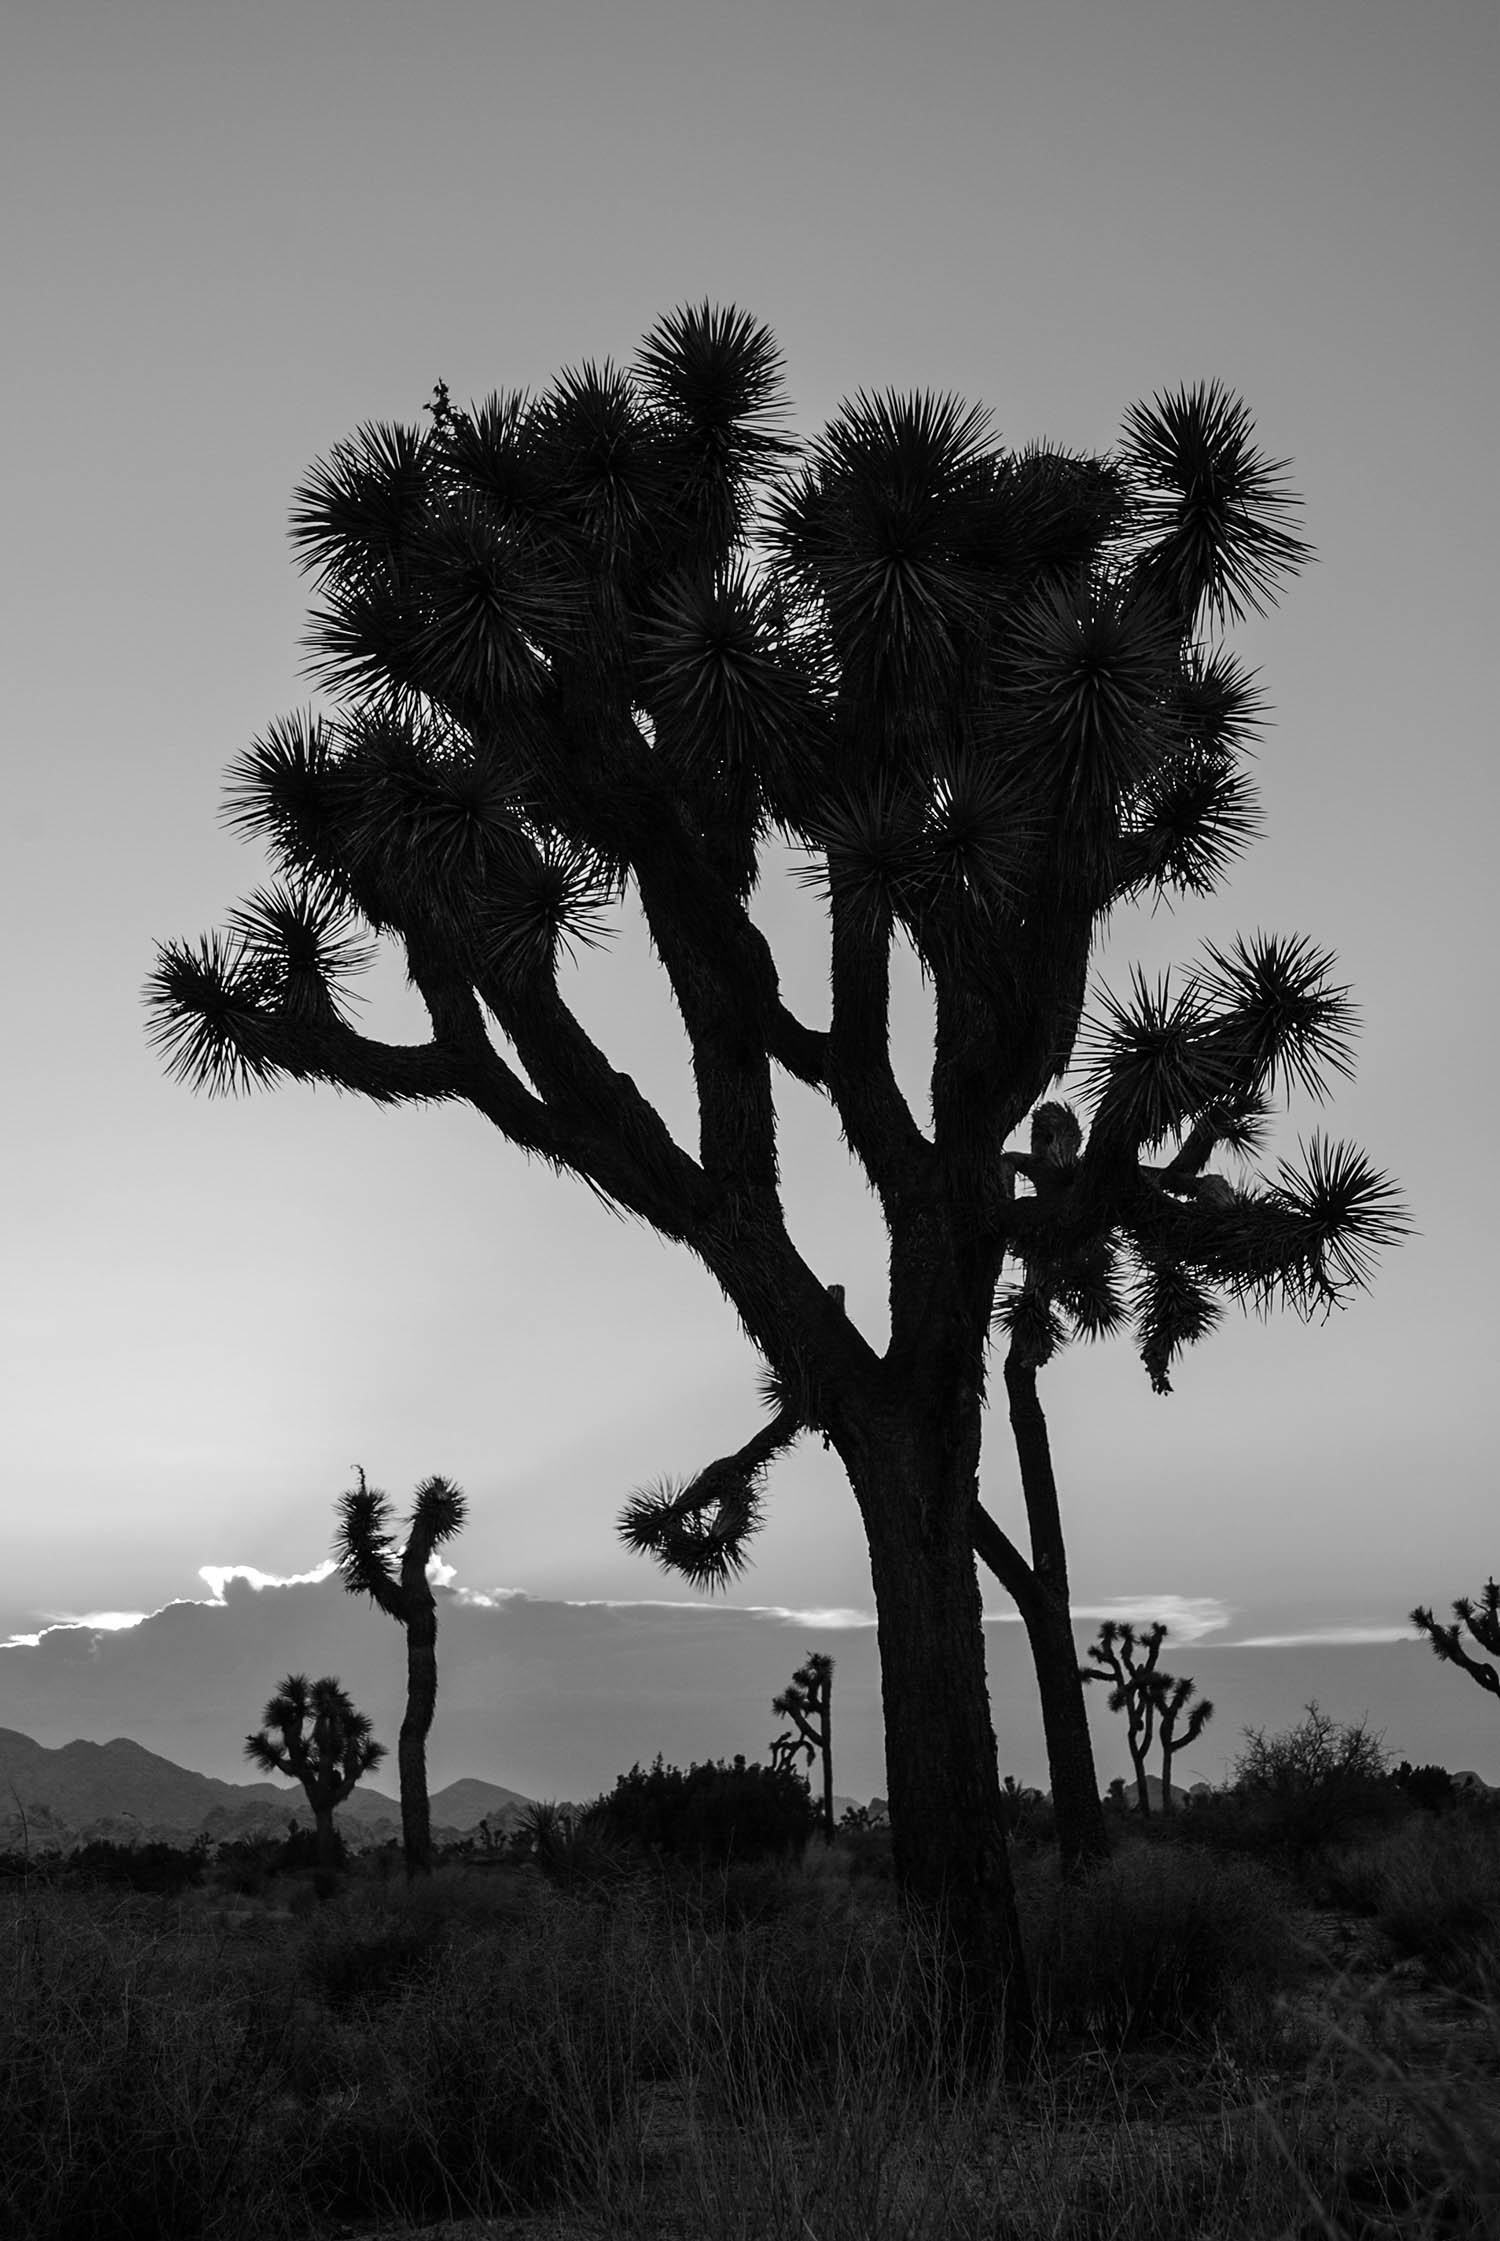 With the arrival of night, we left the park with the silhouettes of the Joshua trees standing stolid against the sunset. They looked like spiked lightning bolts piercing the sky. I have never experienced such a landscape, and I look forward to when I return.